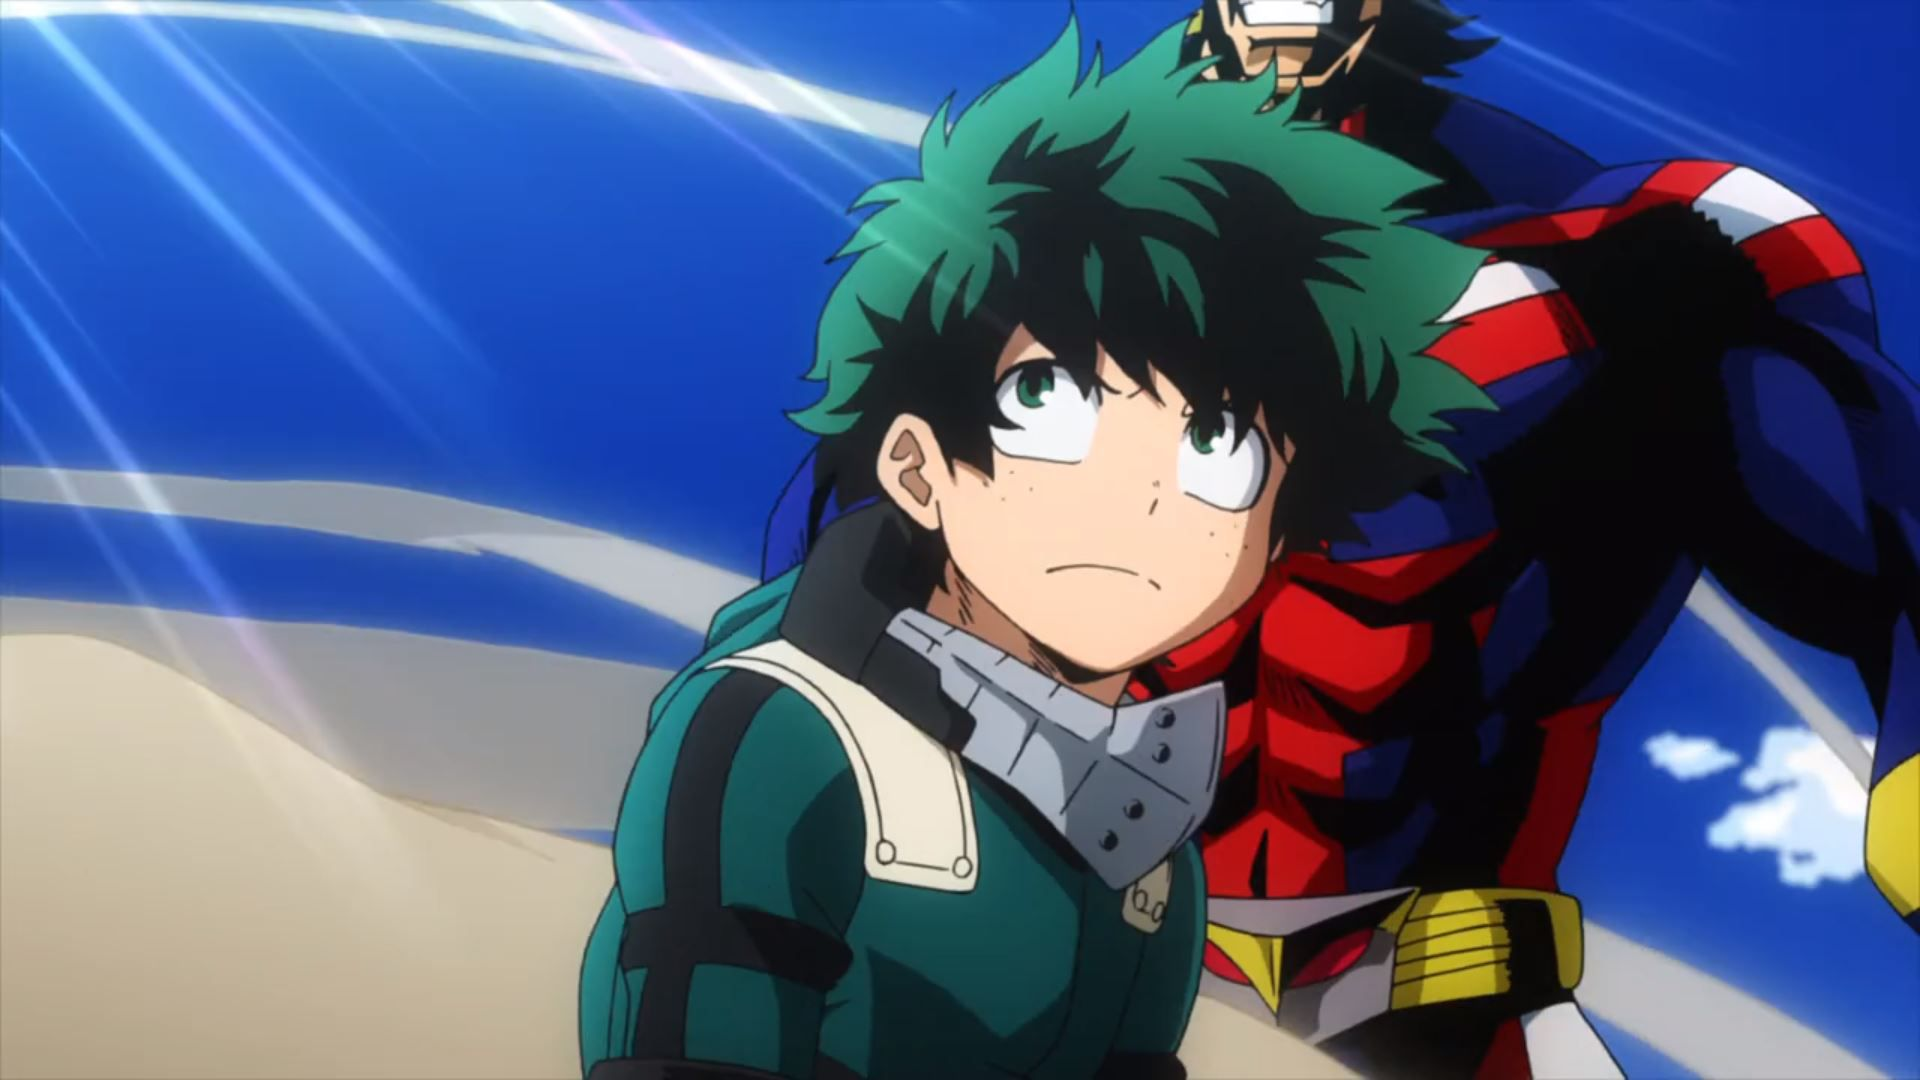 A screenshot of my hero academia